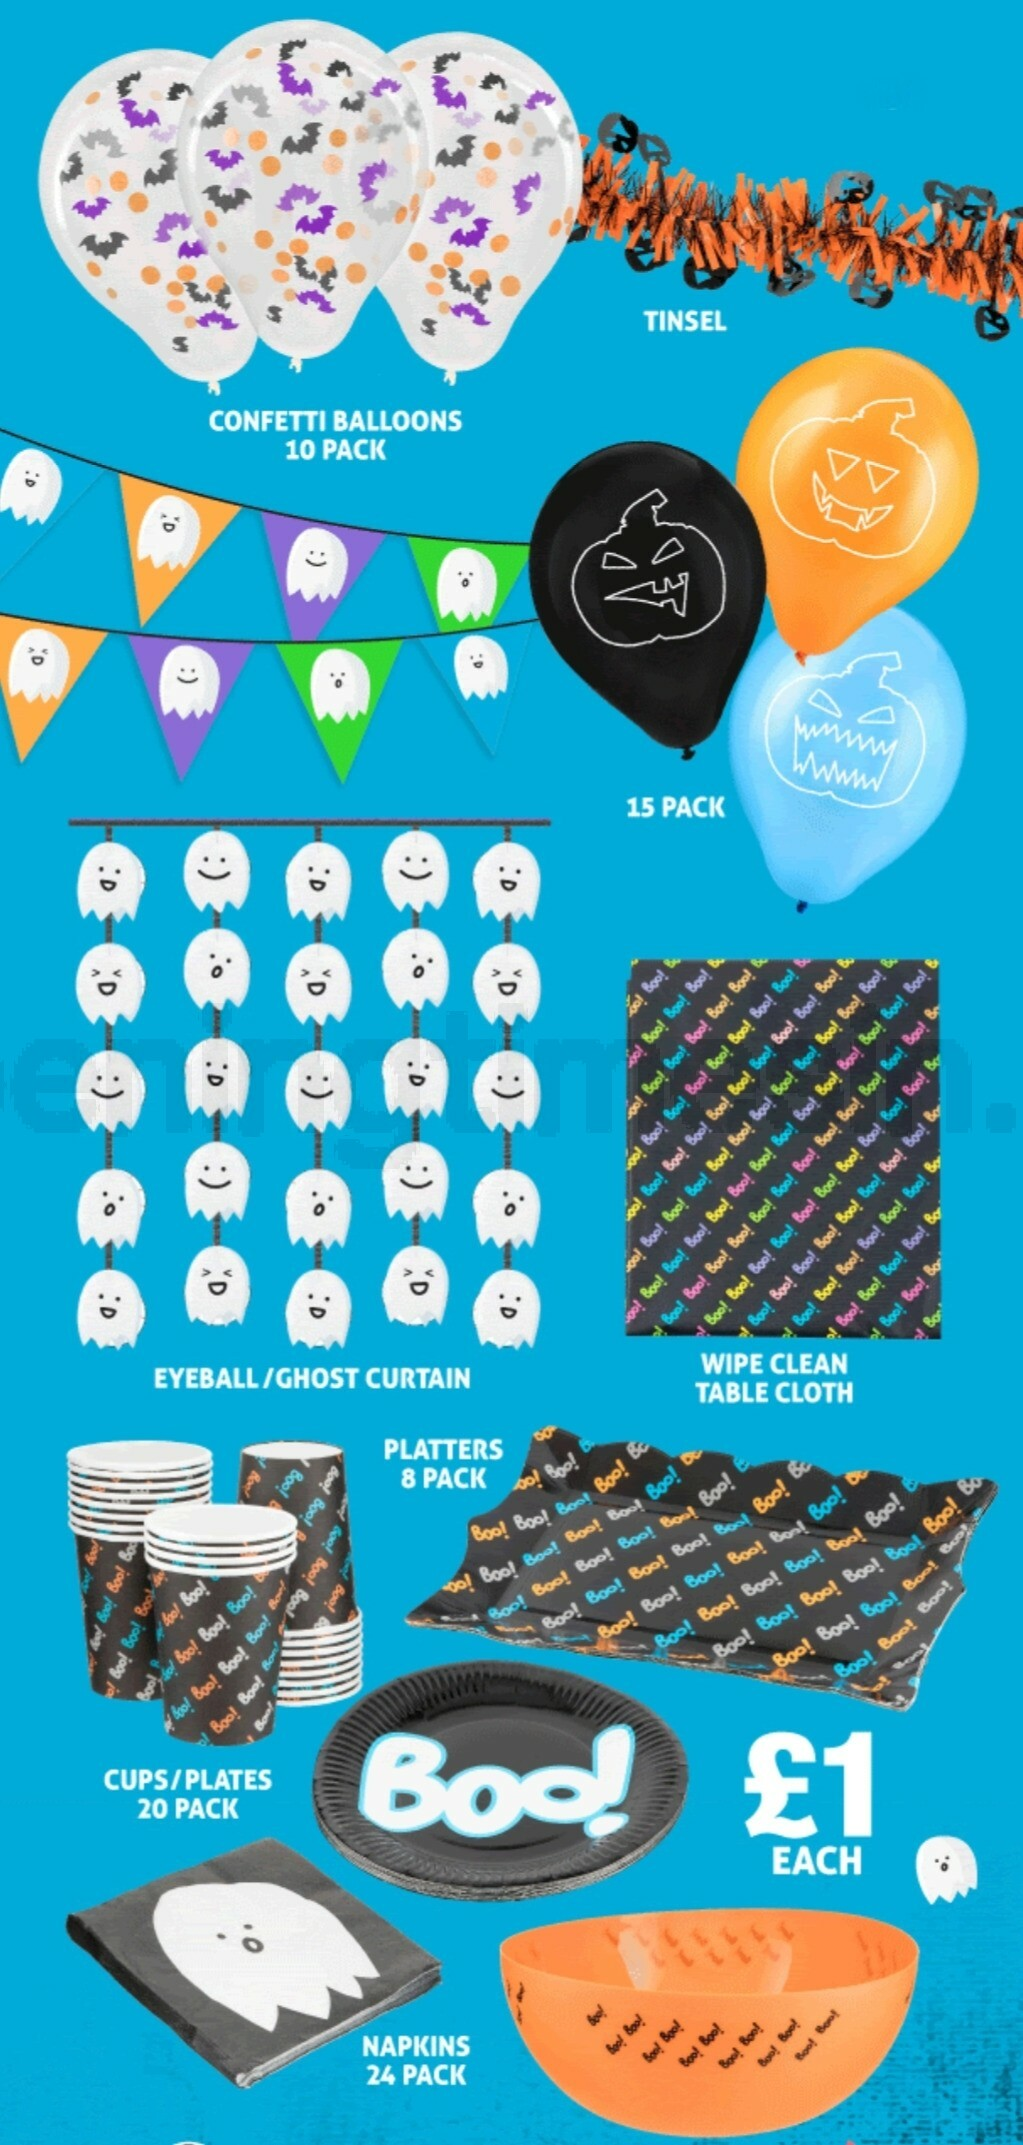 Poundland Halloween Offers from October 10